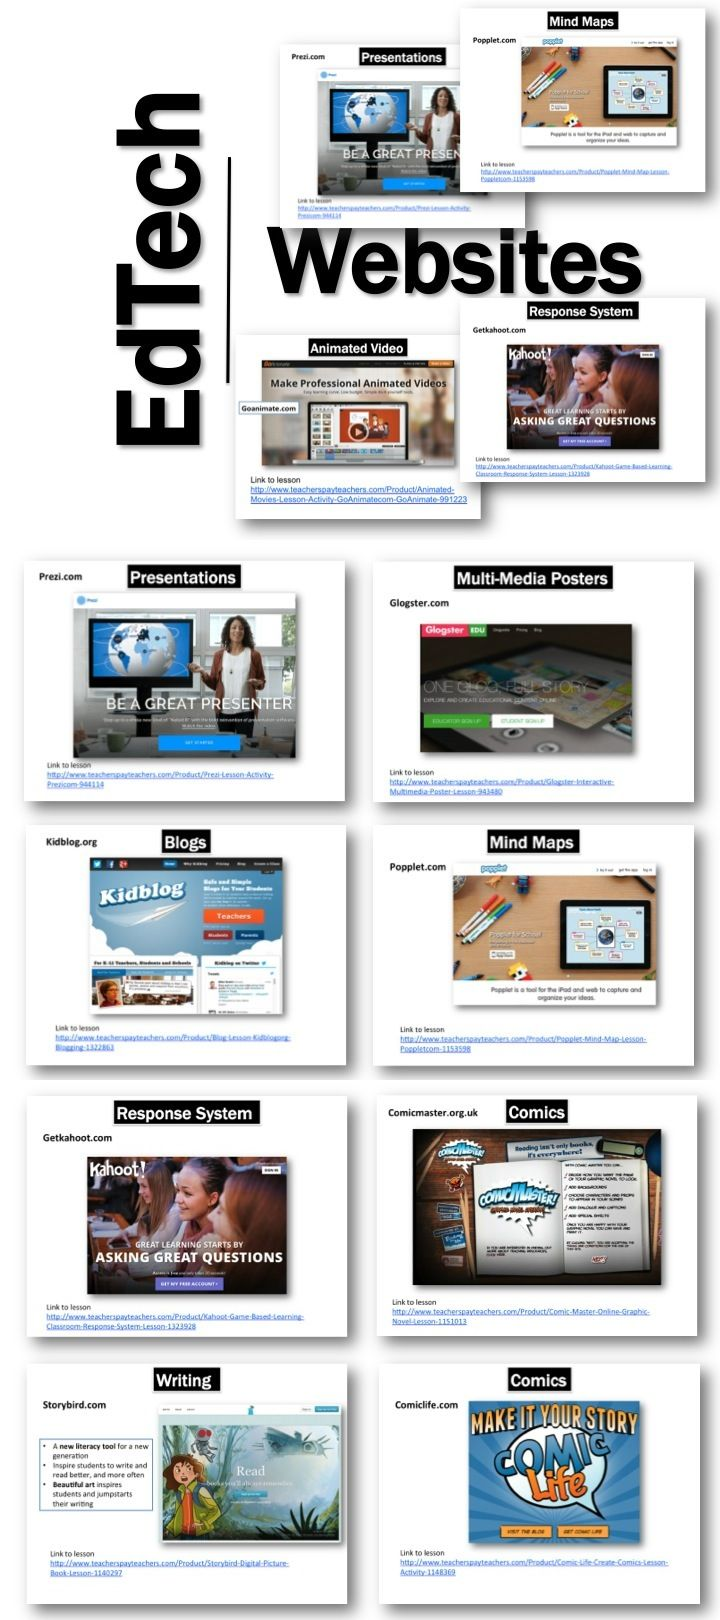 A free collection of Educational Technology Websites divided into categories. Links to lessons for each website. TOPICS 1. Presentations (Prezi, Haiku Deck) 2. Multi-Media Posters (Glogster) 3. Blogs (Kidblog) 4. Mind Maps (Popplet, Slatebox) 5. Online Response System (Kahoot) #edtech #elearning